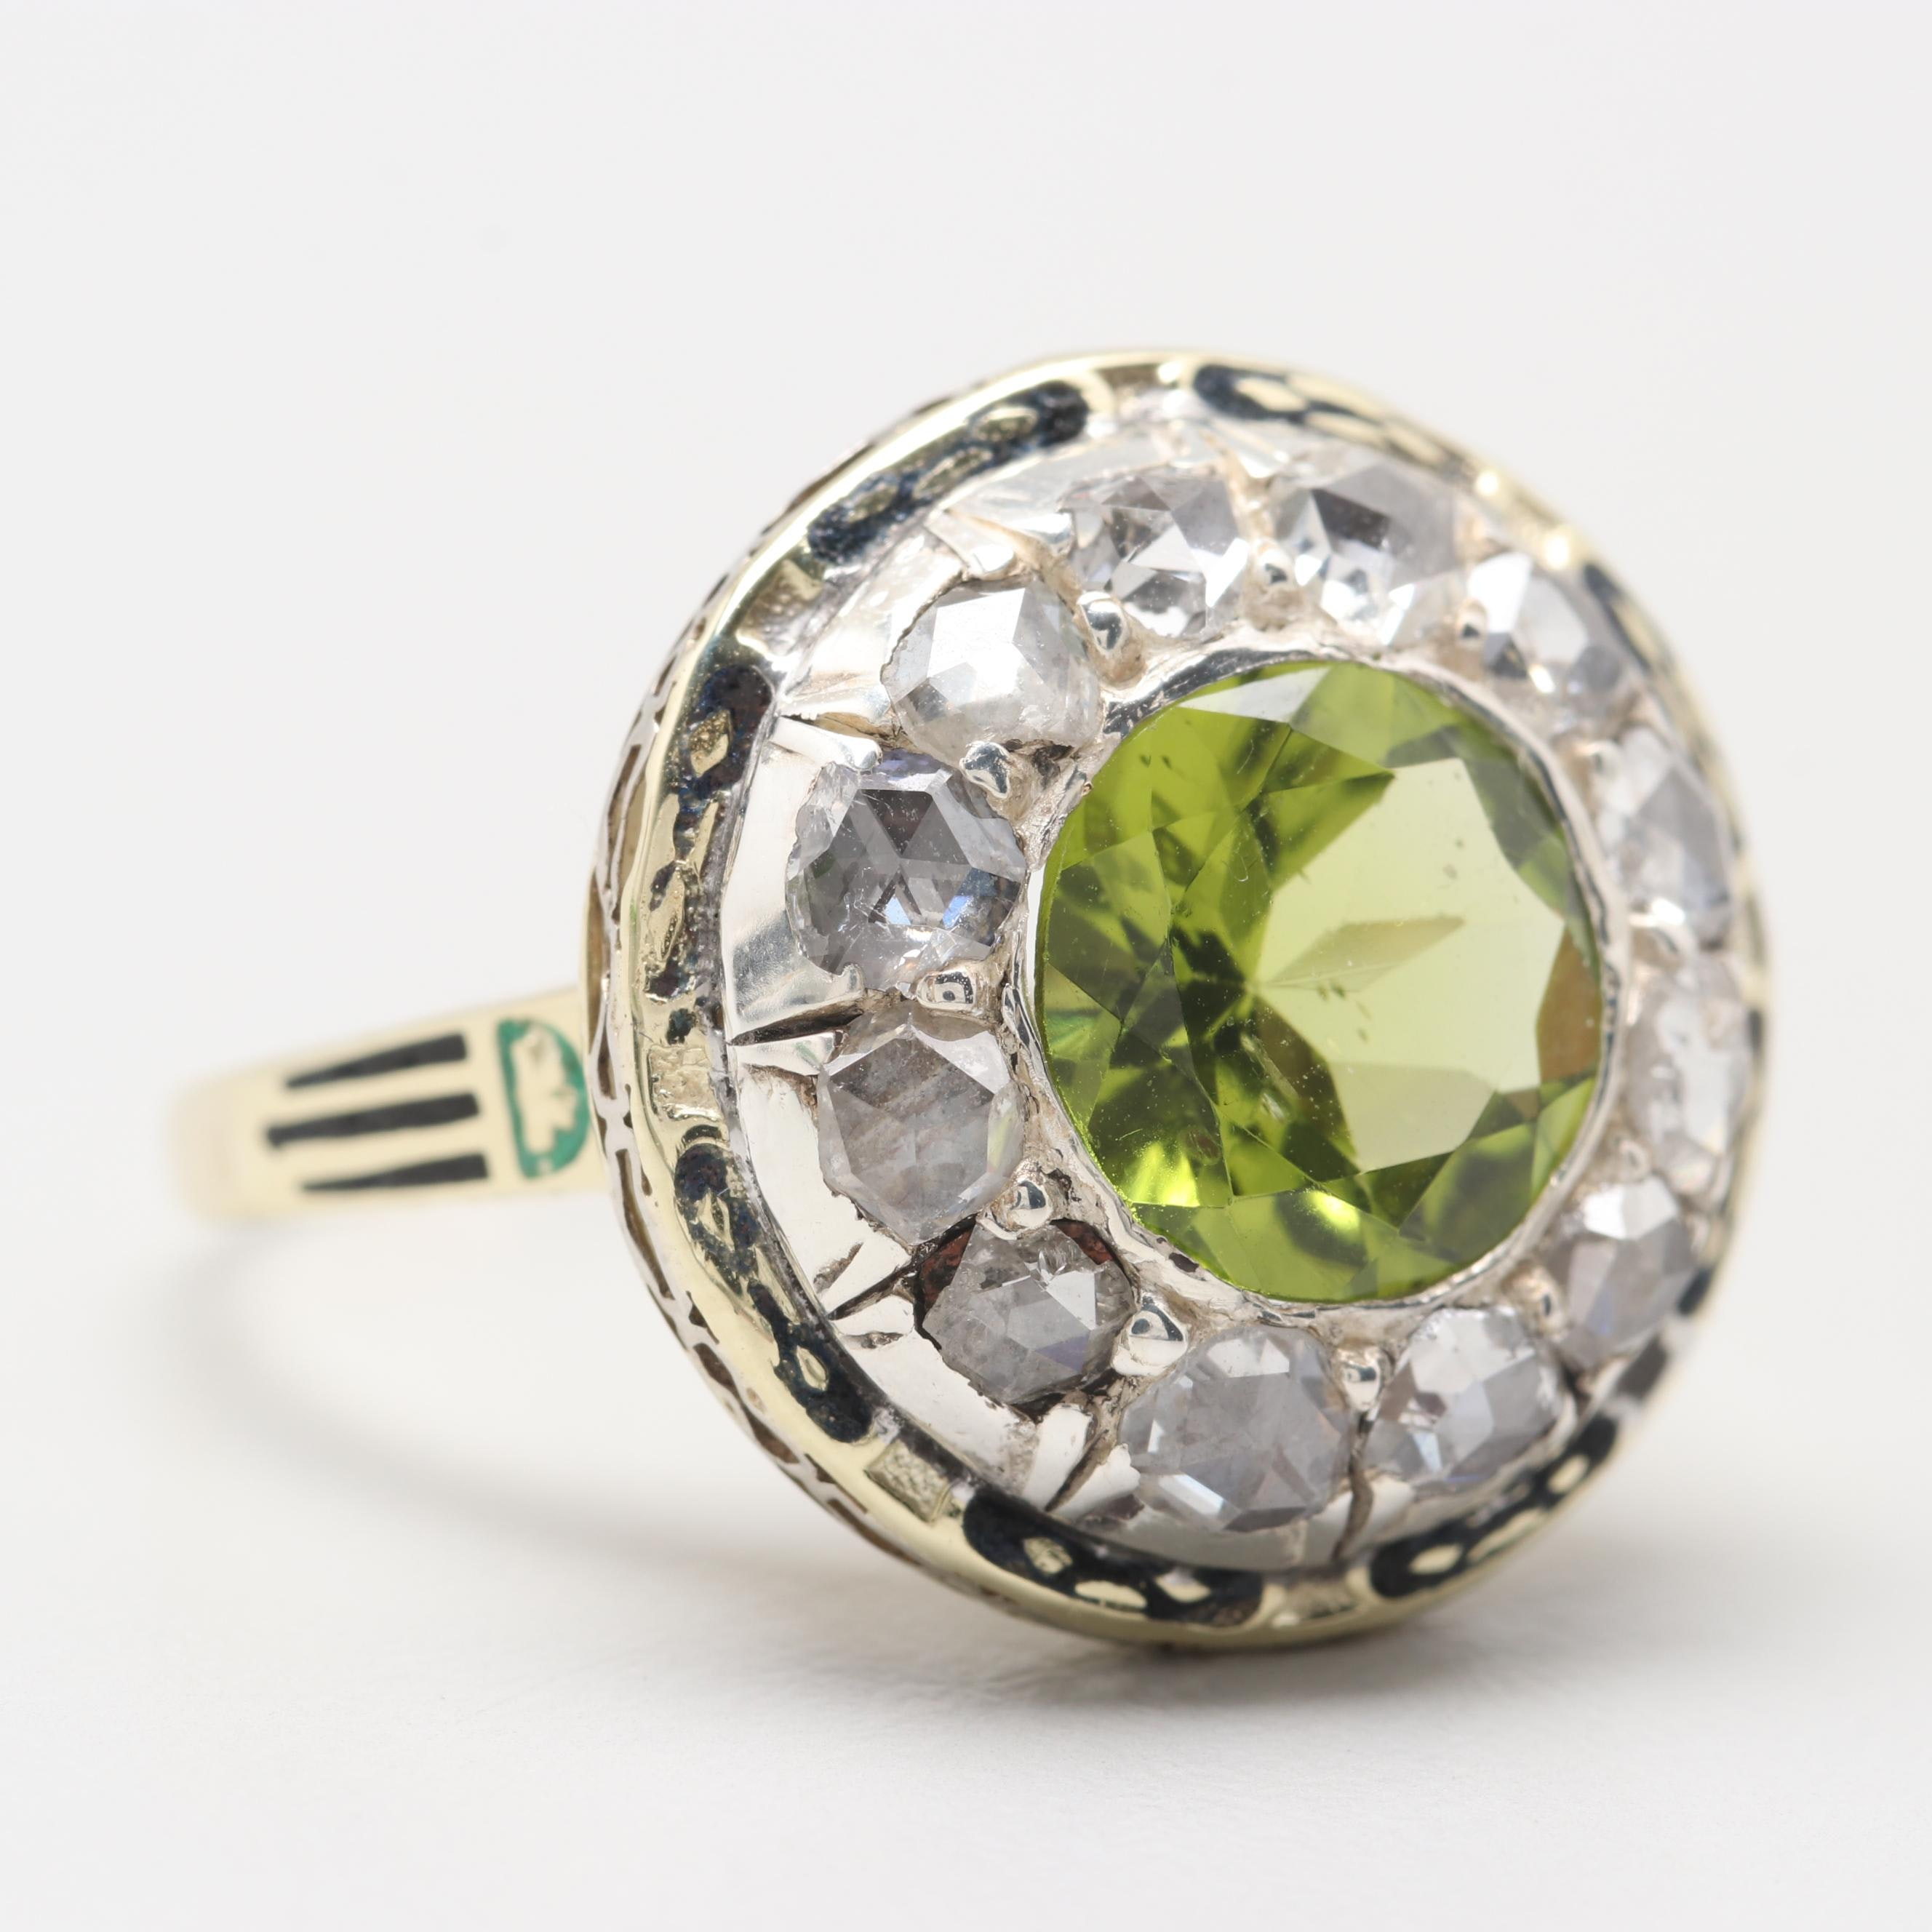 Vintage 14K Yellow Gold Peridot and Diamond Ring with Sterling and Enamel Accent